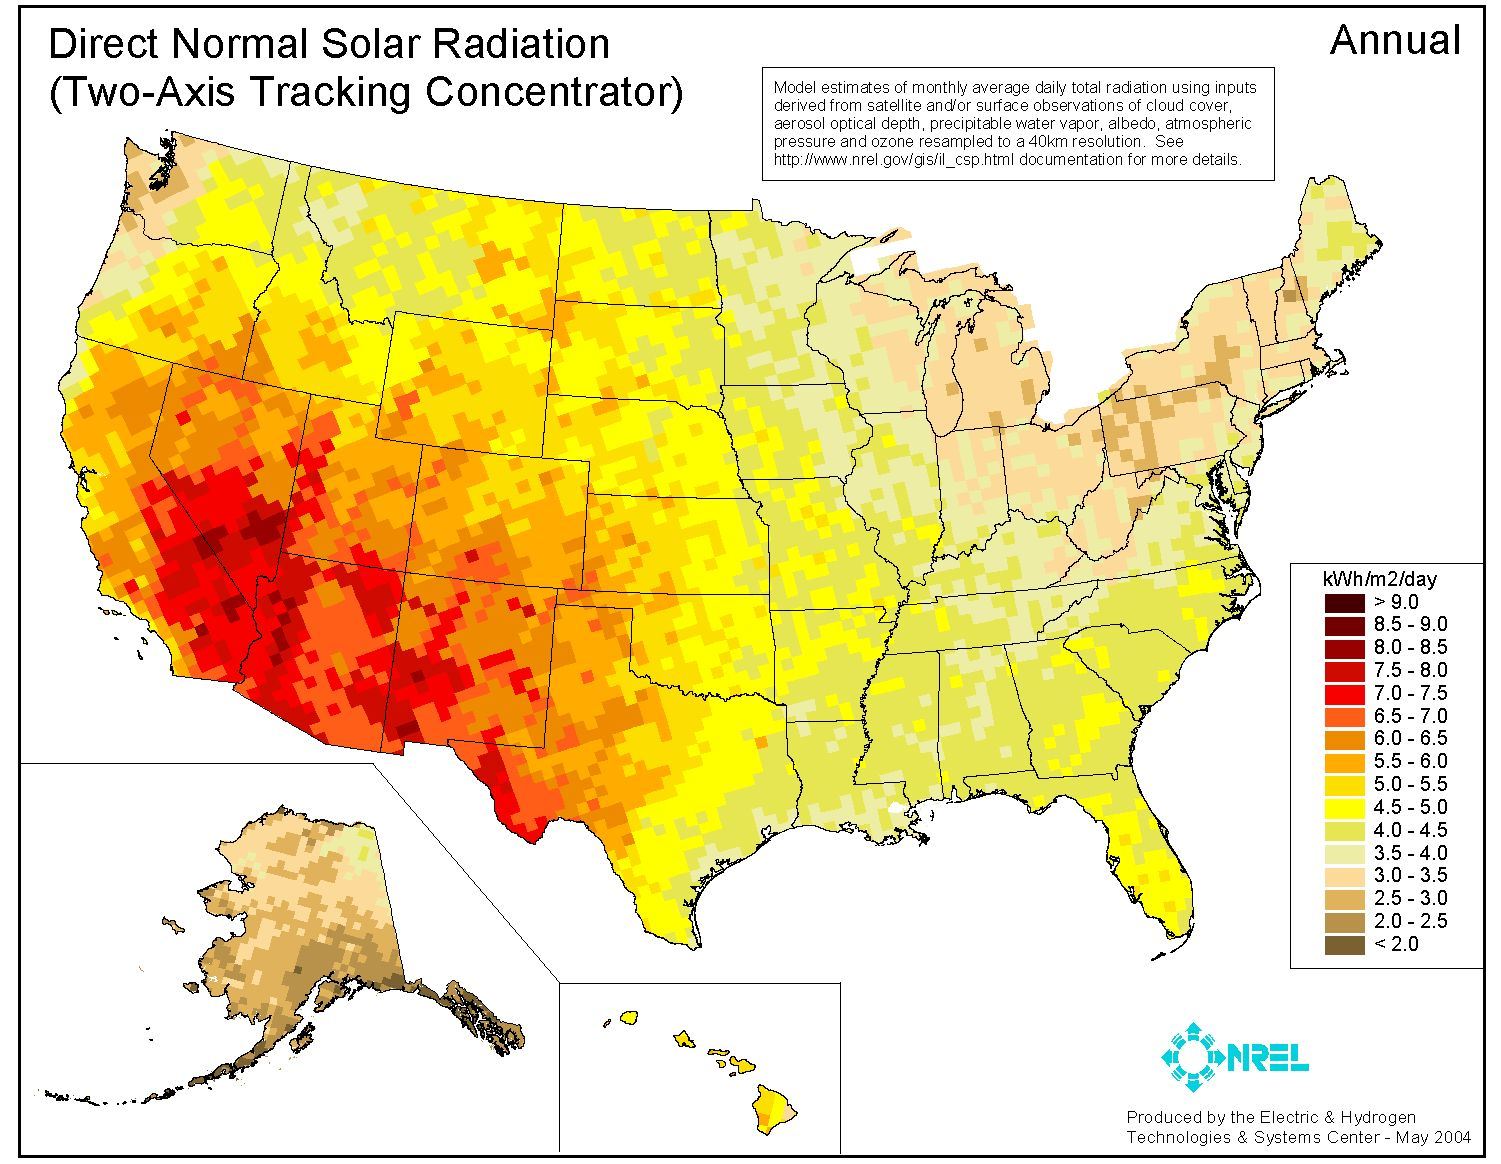 Blue Cheese Nation: Solar Saturation Map Makes Case For The ... on global warming map, coal map, sustainability map, europe map, transportation map, training map, nuclear map, wind map, economy map,